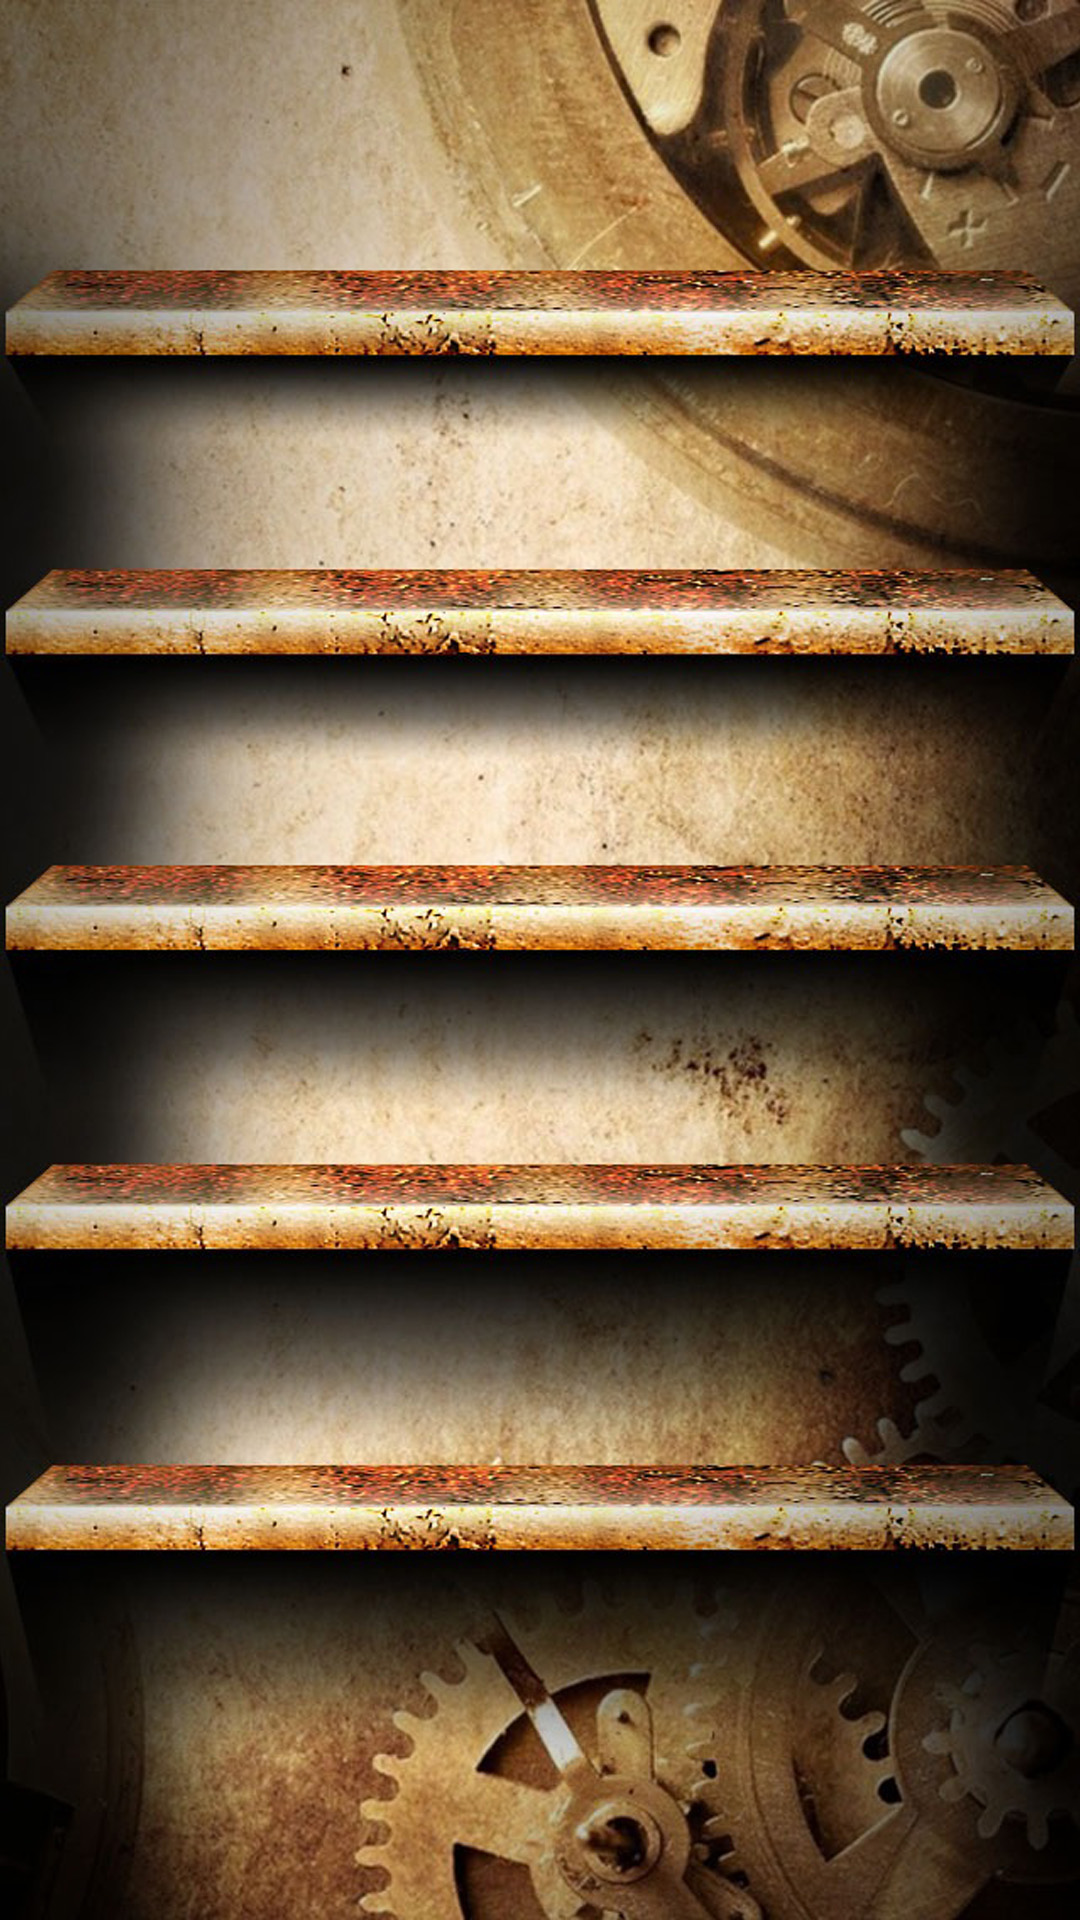 Shelf iPhone 6 Plus Wallpaper 143 iPhone 6 Plus Wallpapers HD 1080x1920